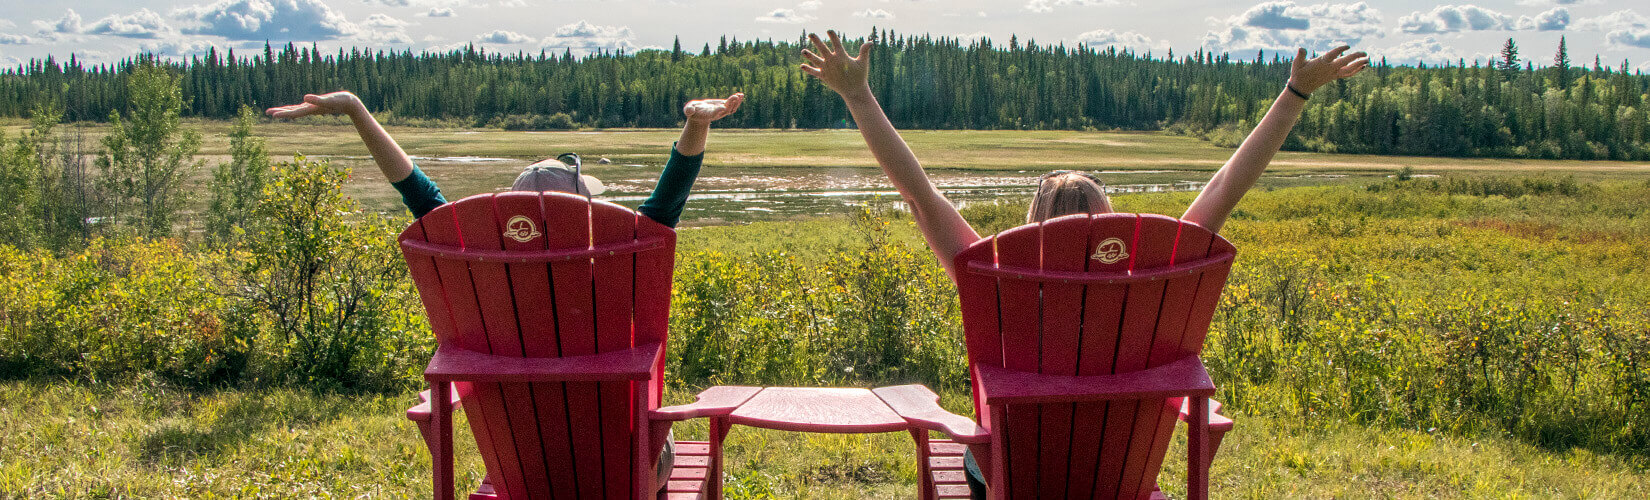 Wood Buffalo National Park - The Ultimate Visitor's Guide » I've Been Bit :: A Travel Blog